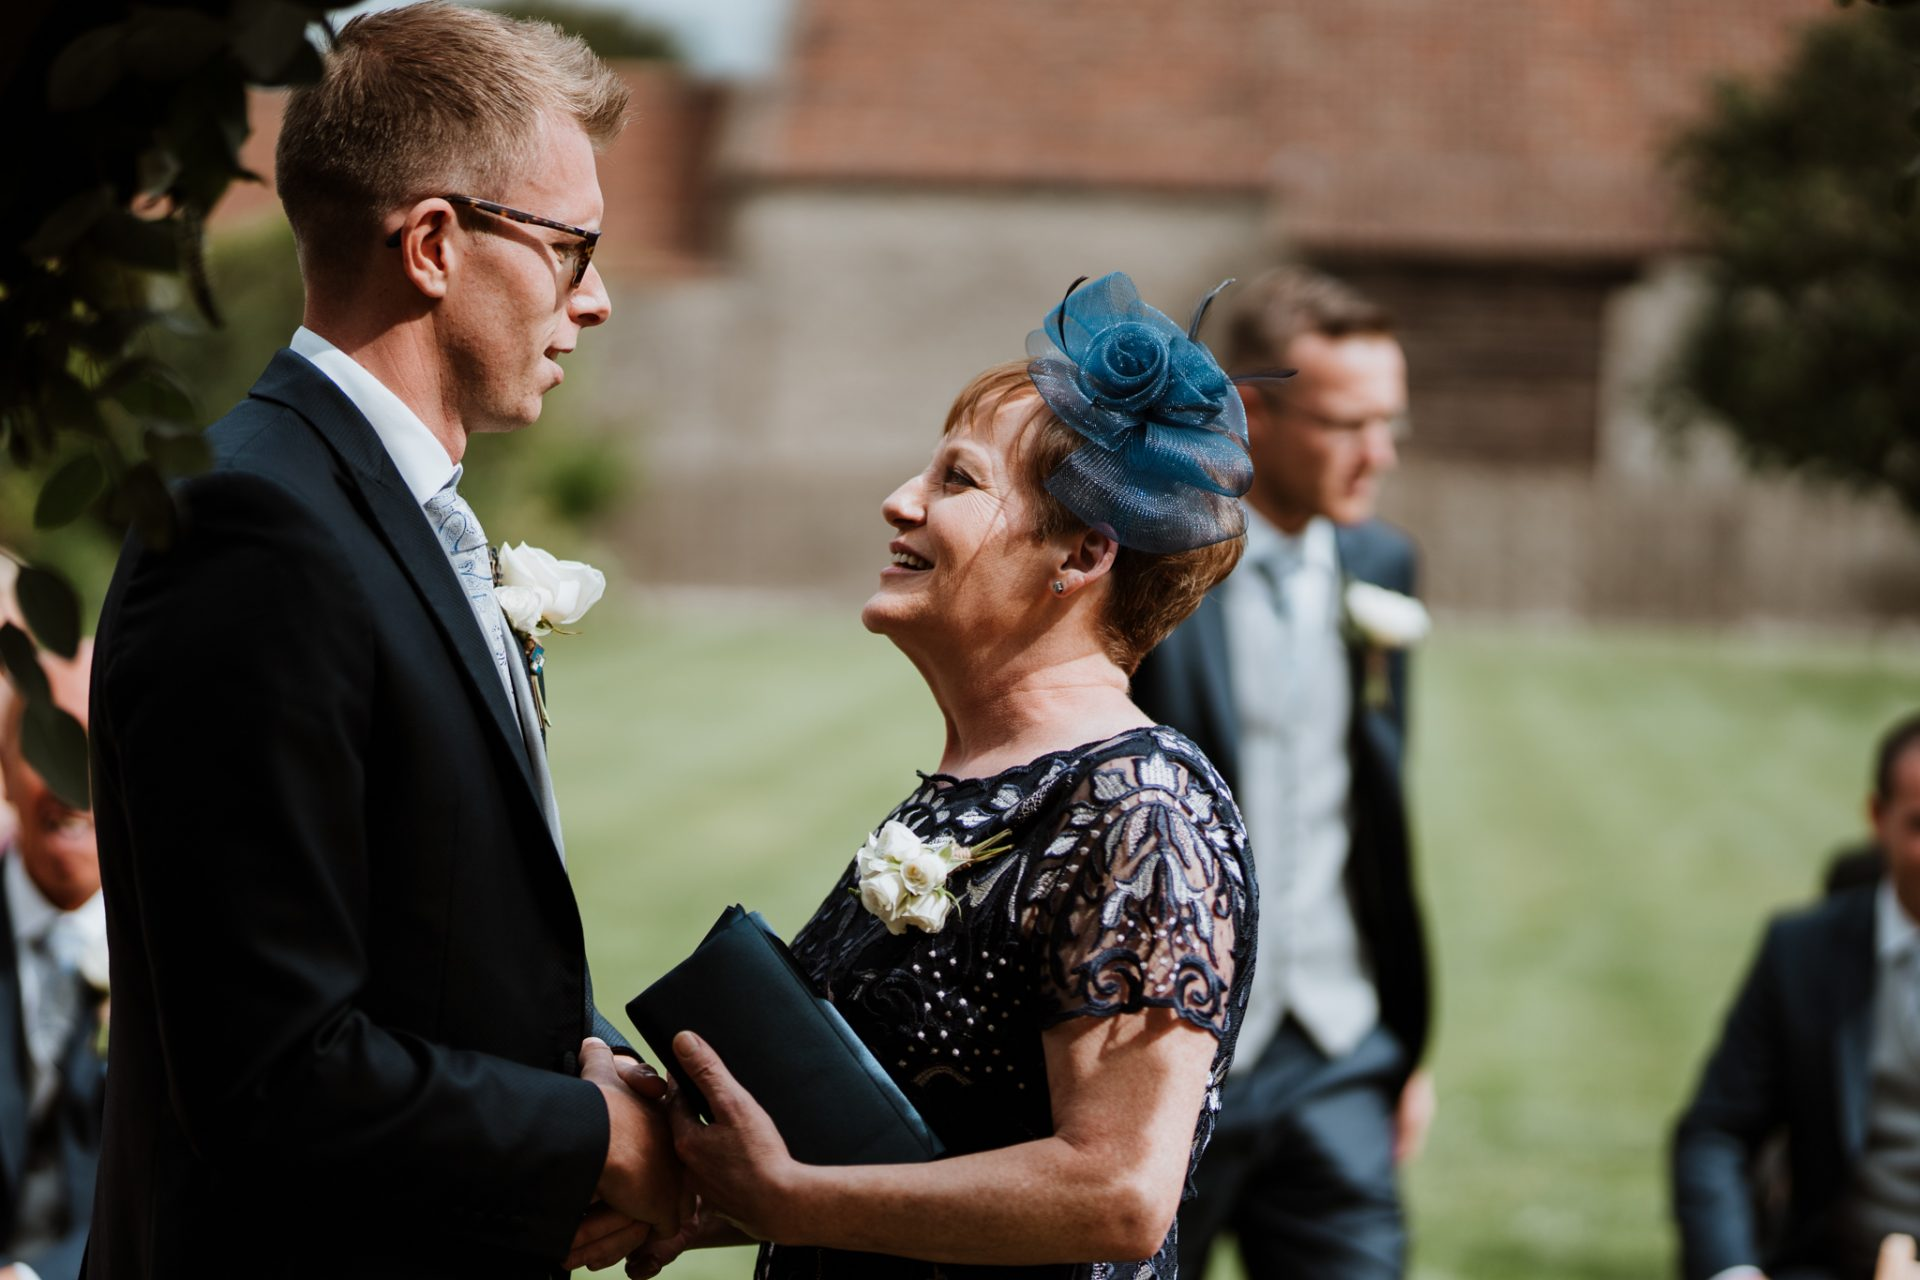 mother of the bride and groom before the ceremony